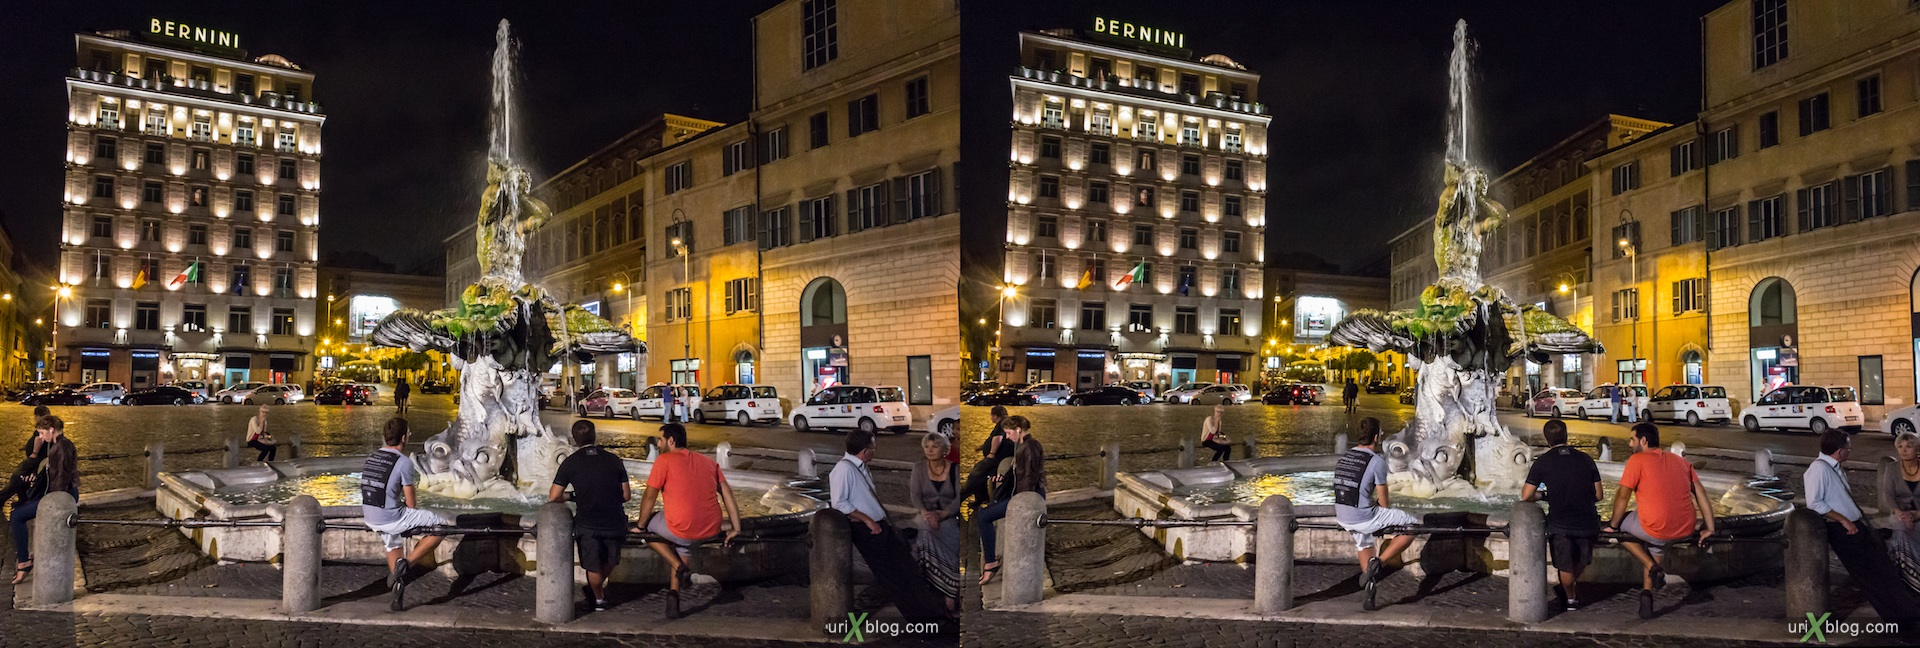 2012, Triton fountain, Barberini square, Rome, Italy, 3D, stereo pair, cross-eyed, crossview, cross view stereo pair